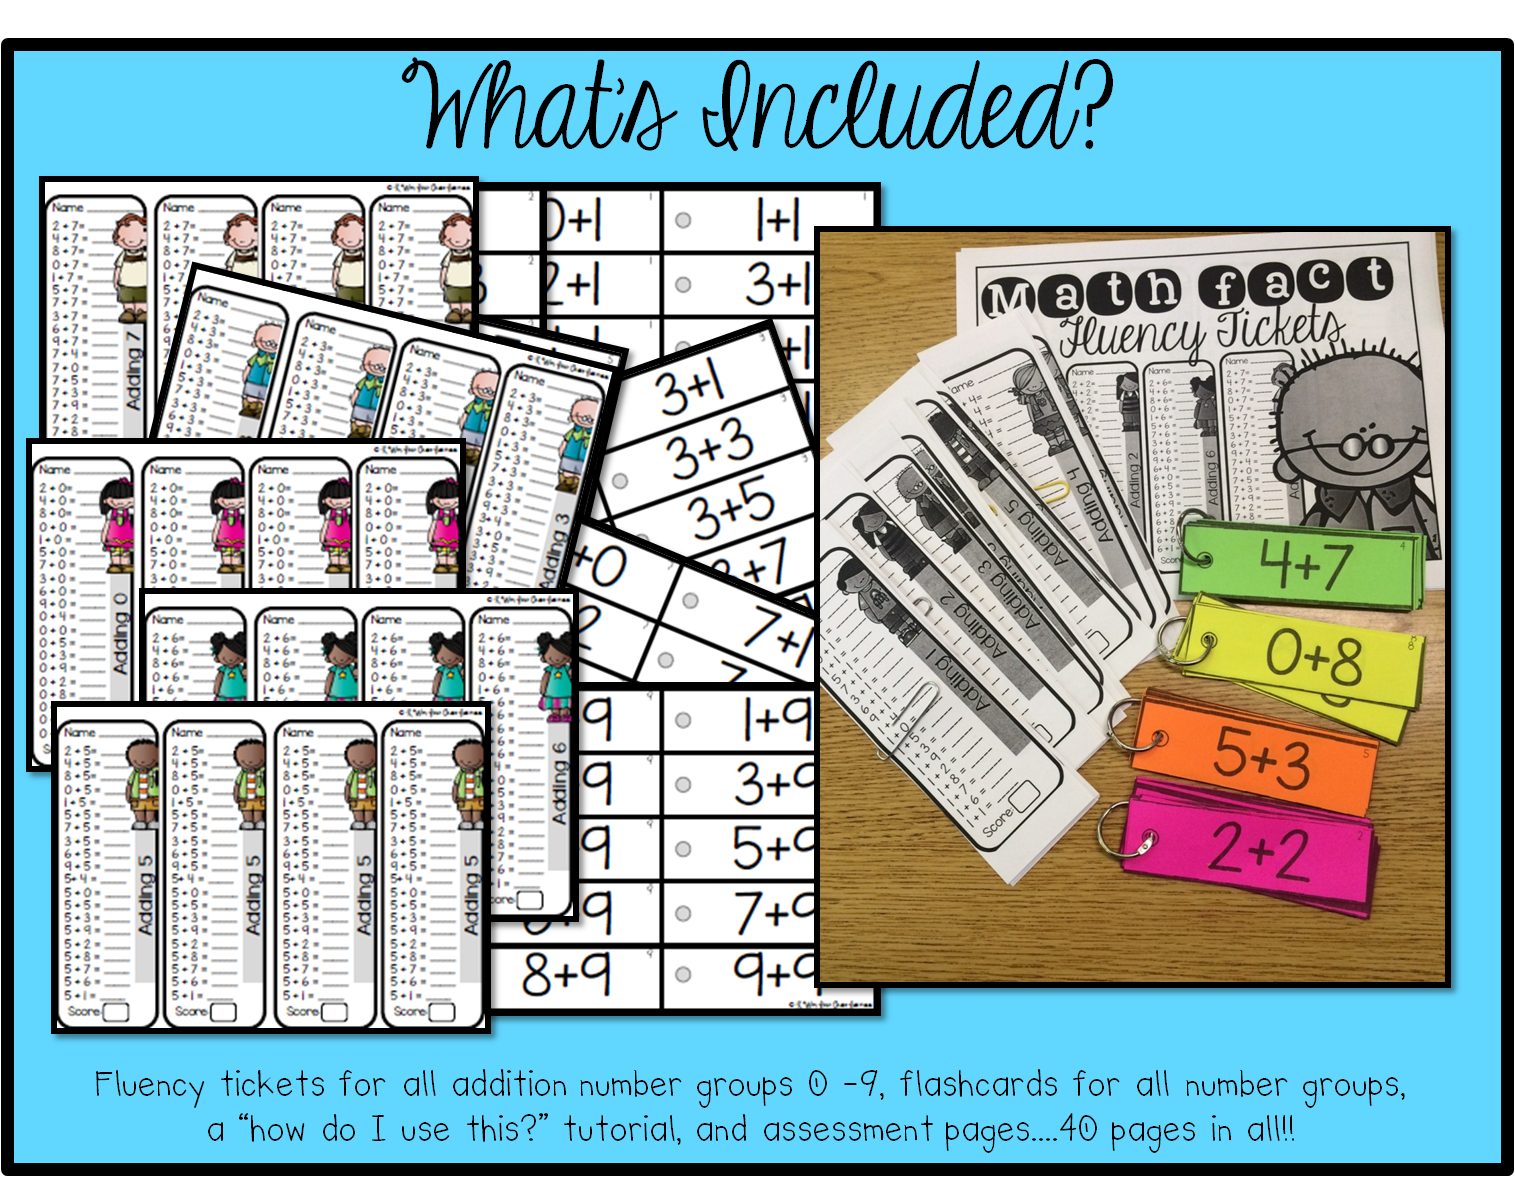 https://www.teacherspayteachers.com/Product/Math-Fact-Addition-Fluency-Tickets-1760557